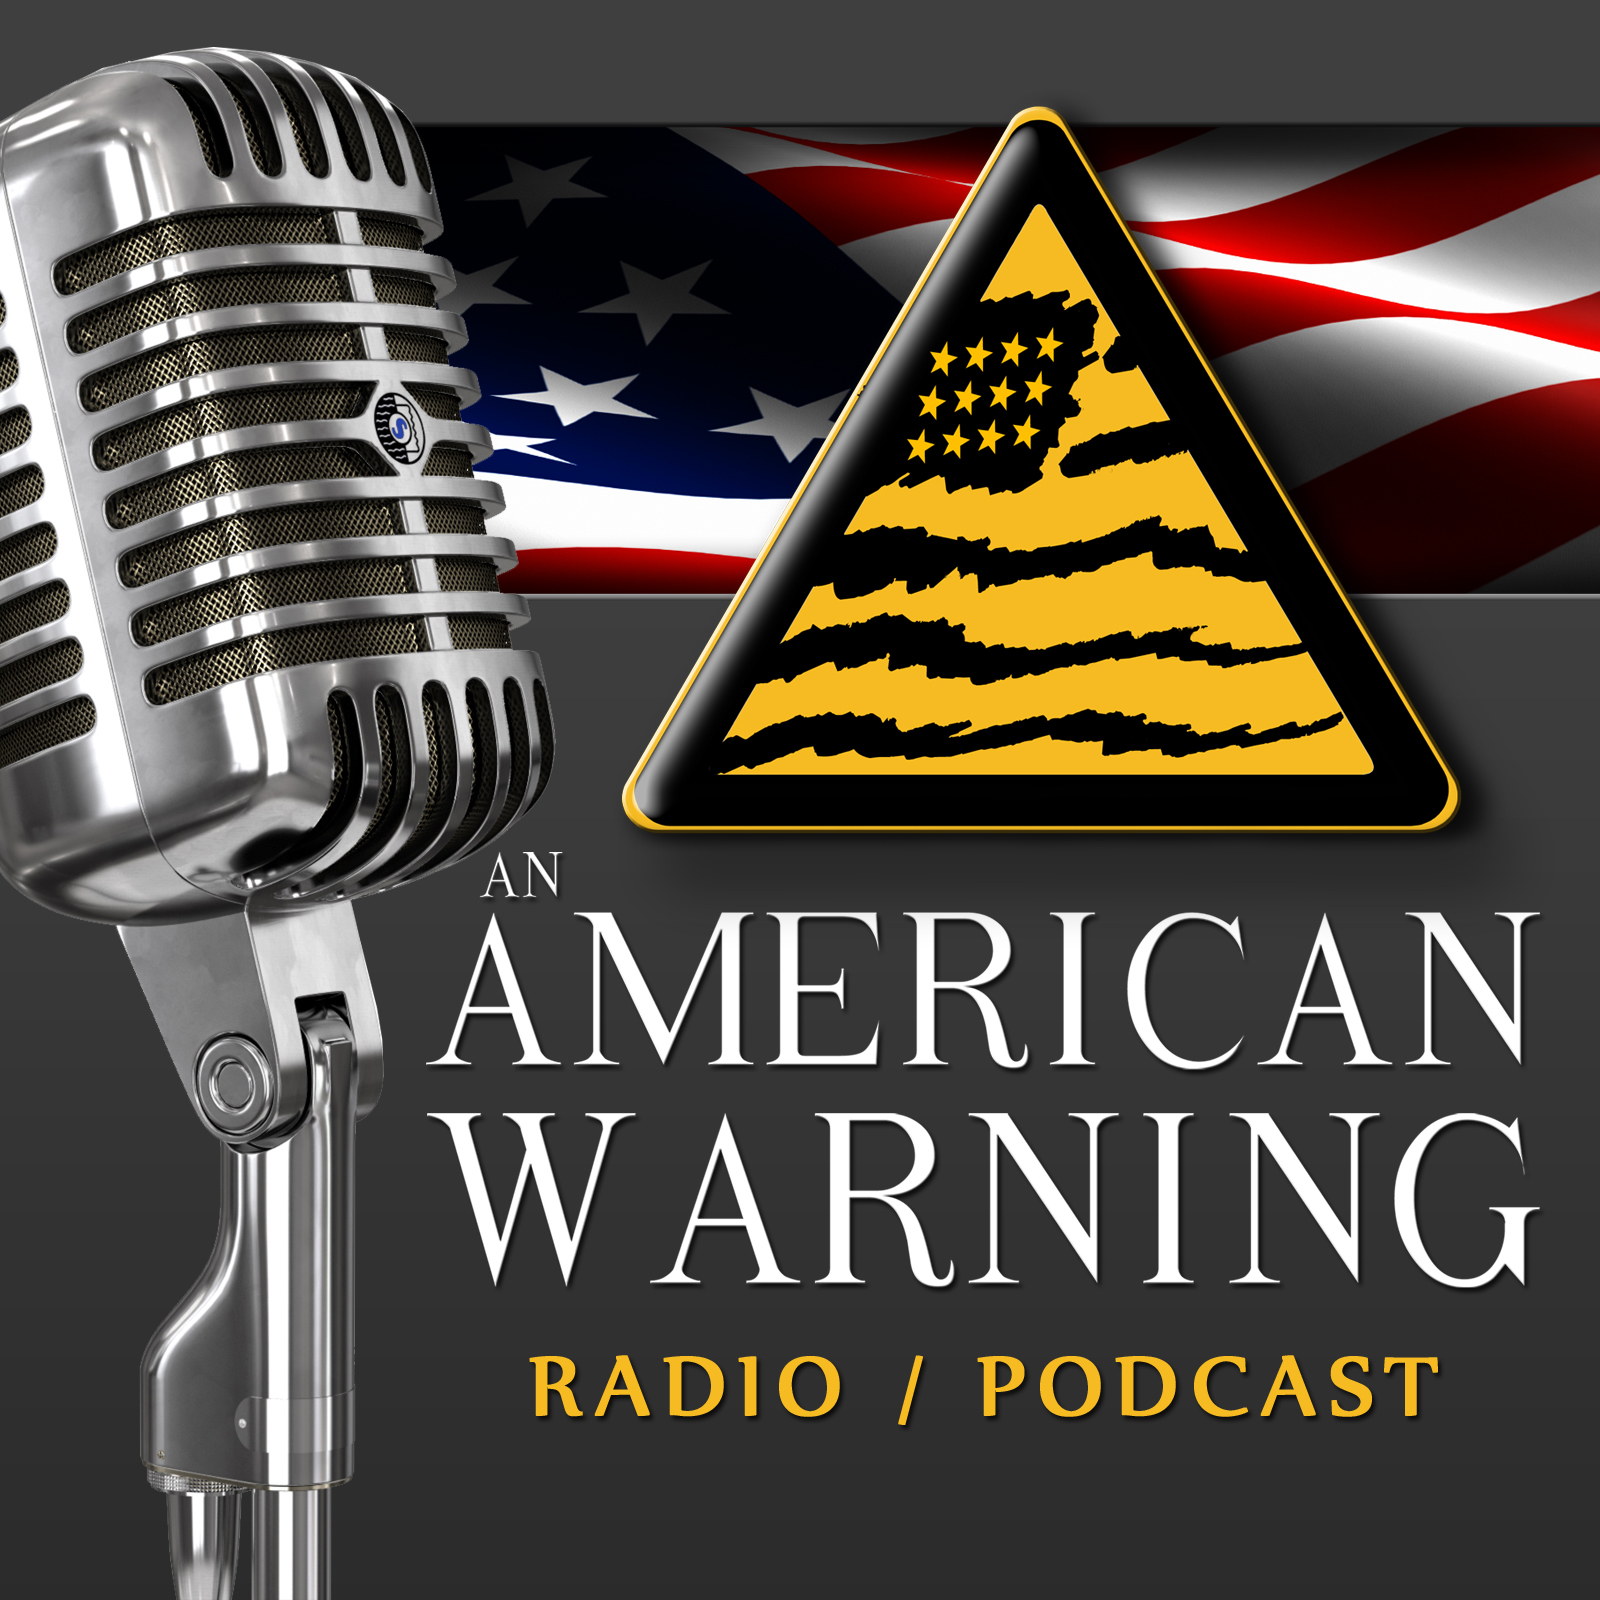 An American Warning